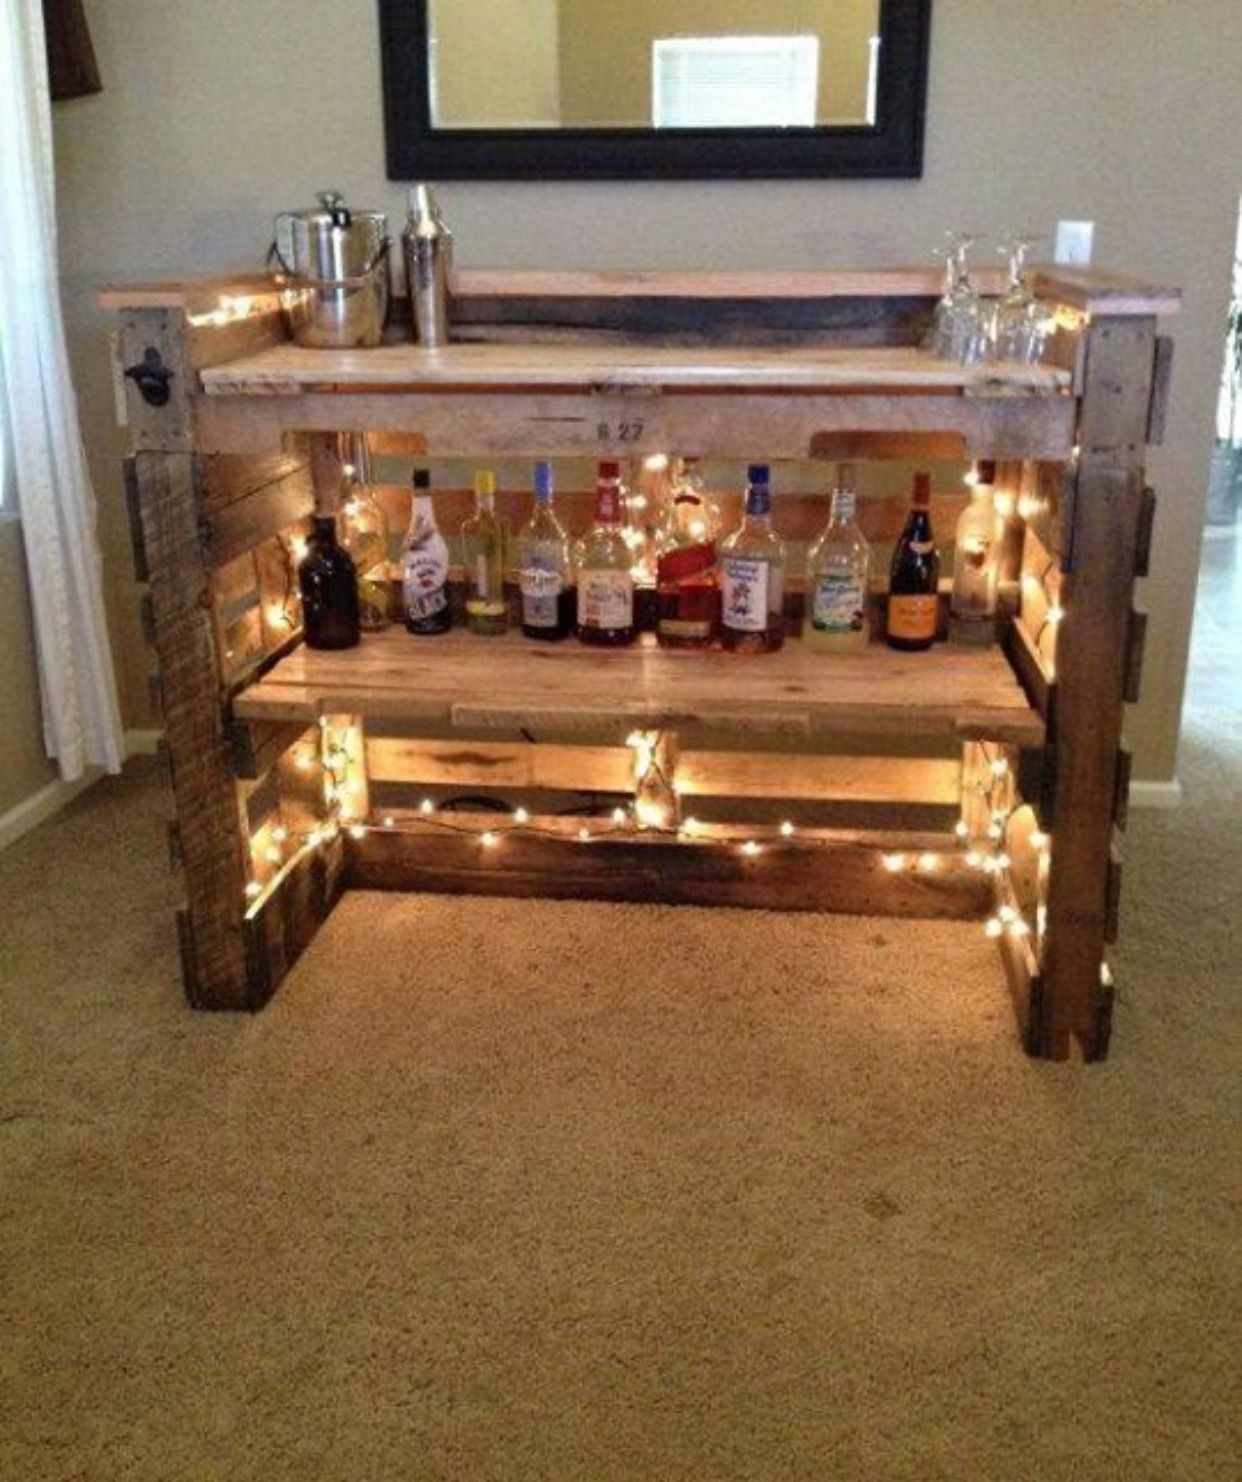 34 Awesome Basement Bar Ideas And How To Make It With Low: Pin By Roksana Daria On Home Ideas I Love